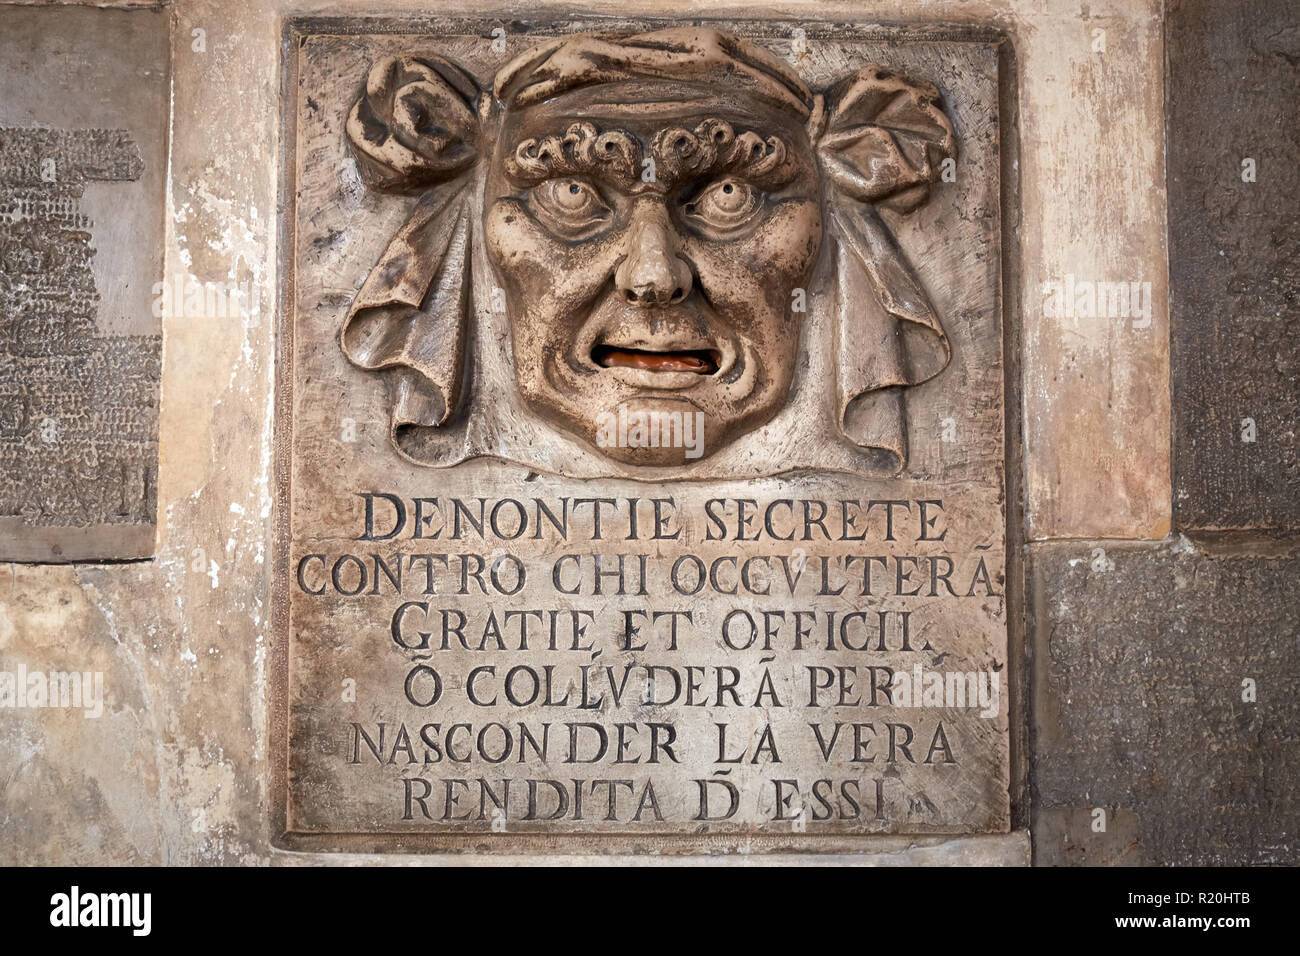 A carving above a letter box inside the Doge's palace, Venice with the text Secret denunciations against anyone who will conceal favors and services Stock Photo